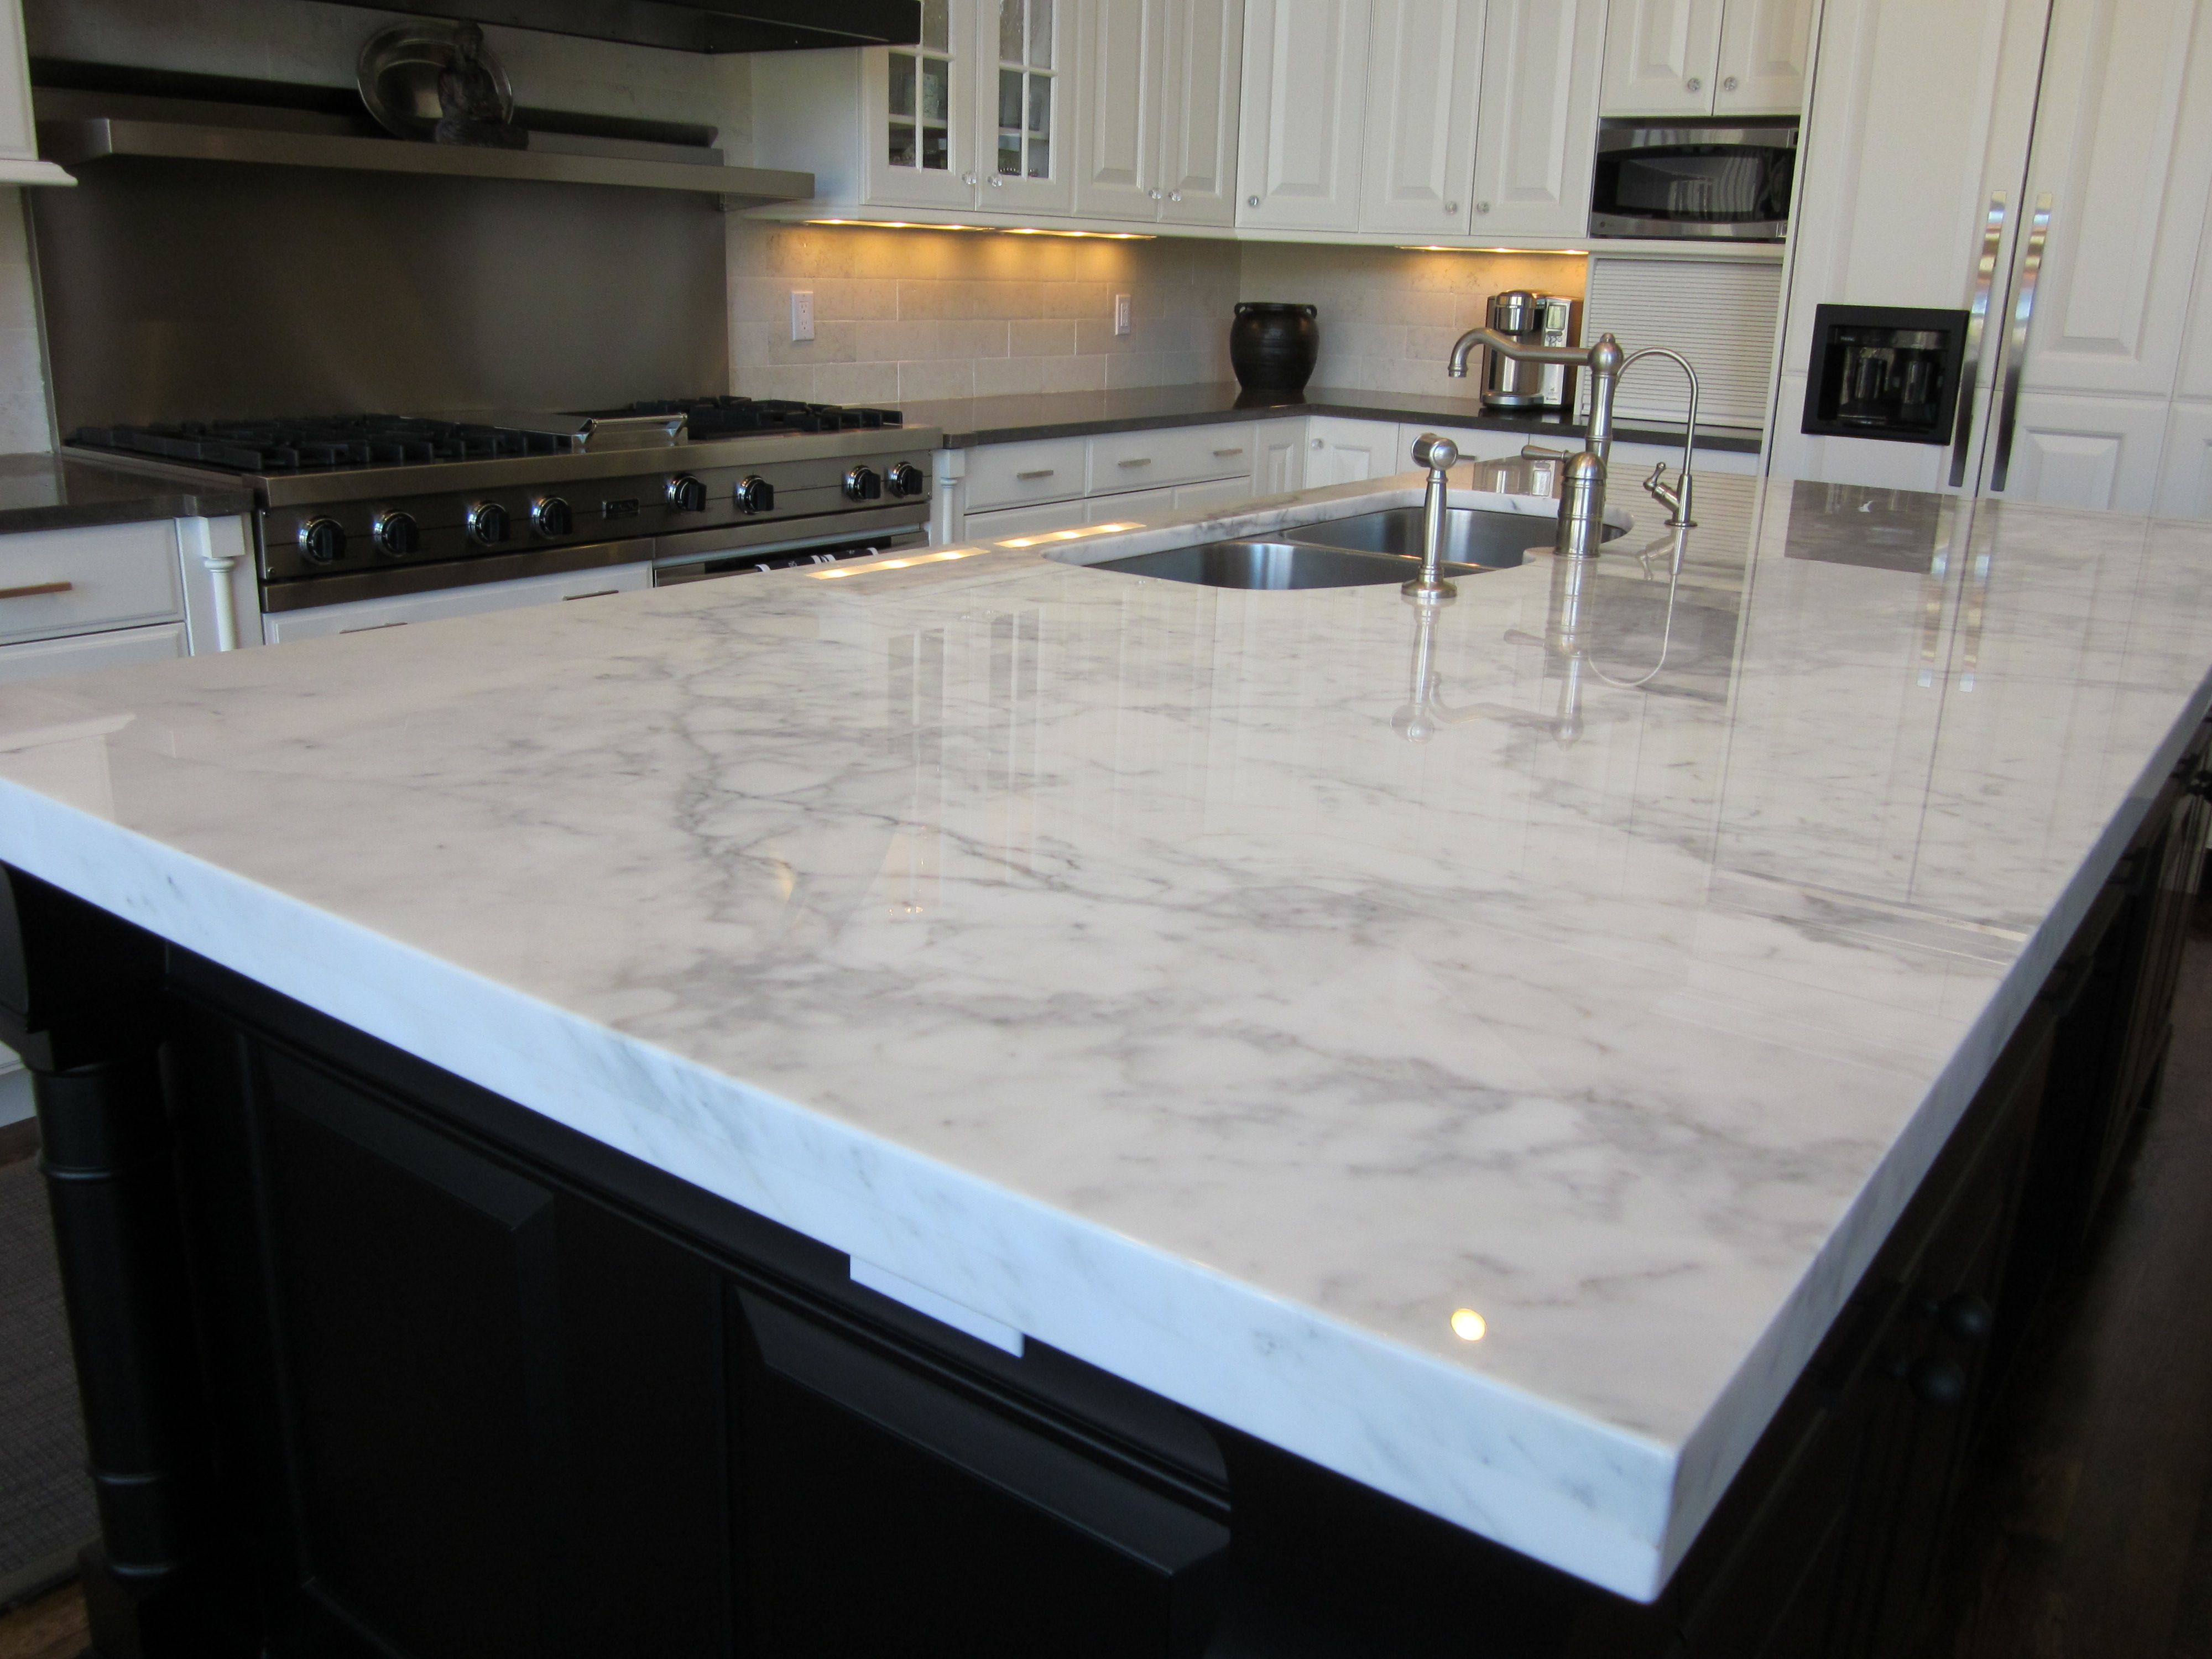 white kitchen countertops White Granite Countertops Quartzite Countertops Countertops For Kitchen Countertop Options Countertops Marble Look Granite Supreme White Granite